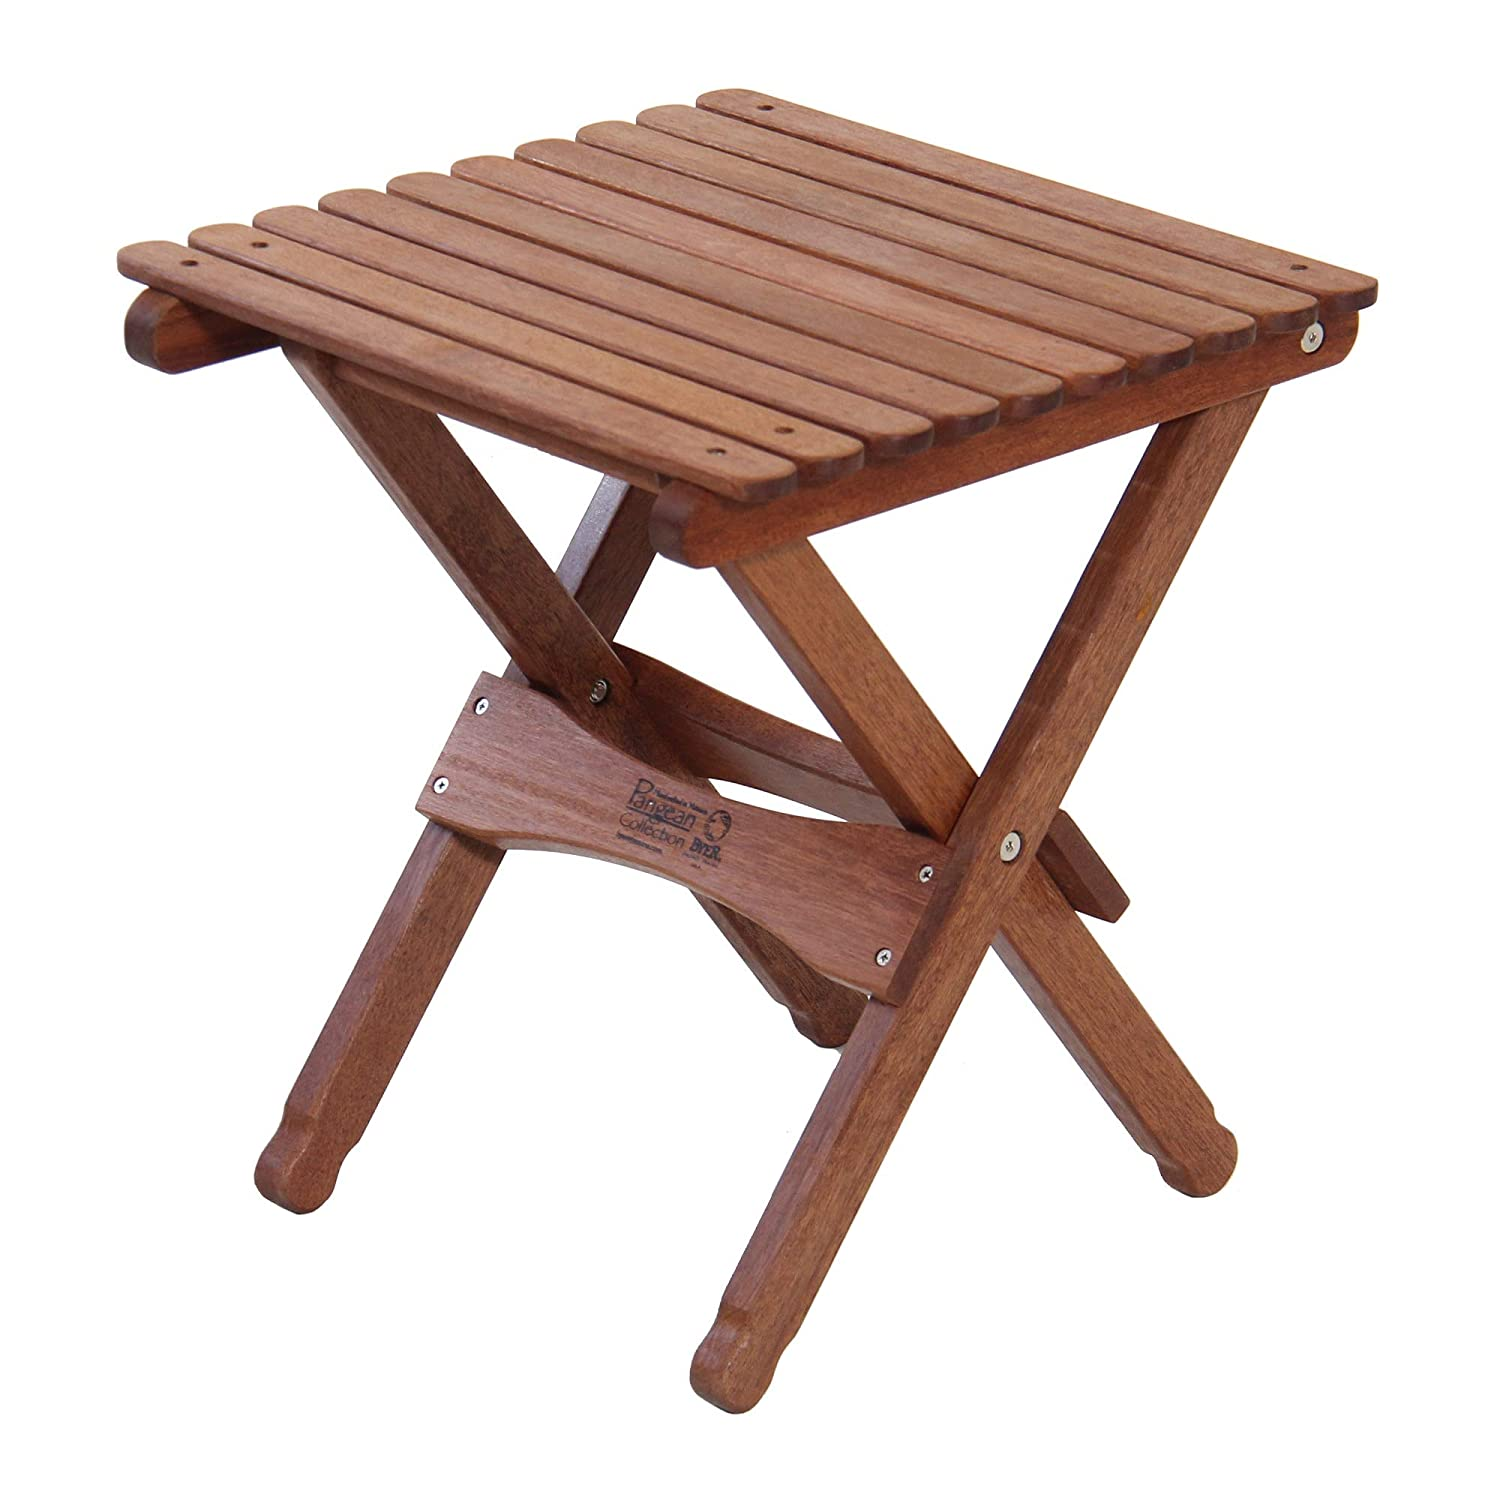 Byer of Maine 18 Wooden Camping and Patio Outdoor Folding End Table – Natural Finish